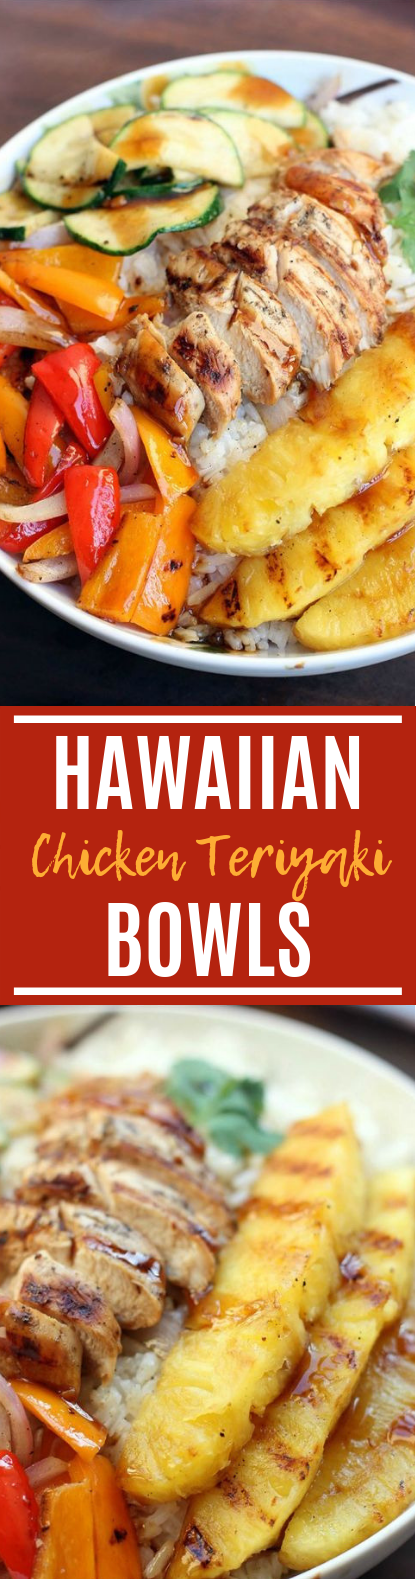 Grilled Hawaiian Chicken Teriyaki Bowls #healthy #glutenfree